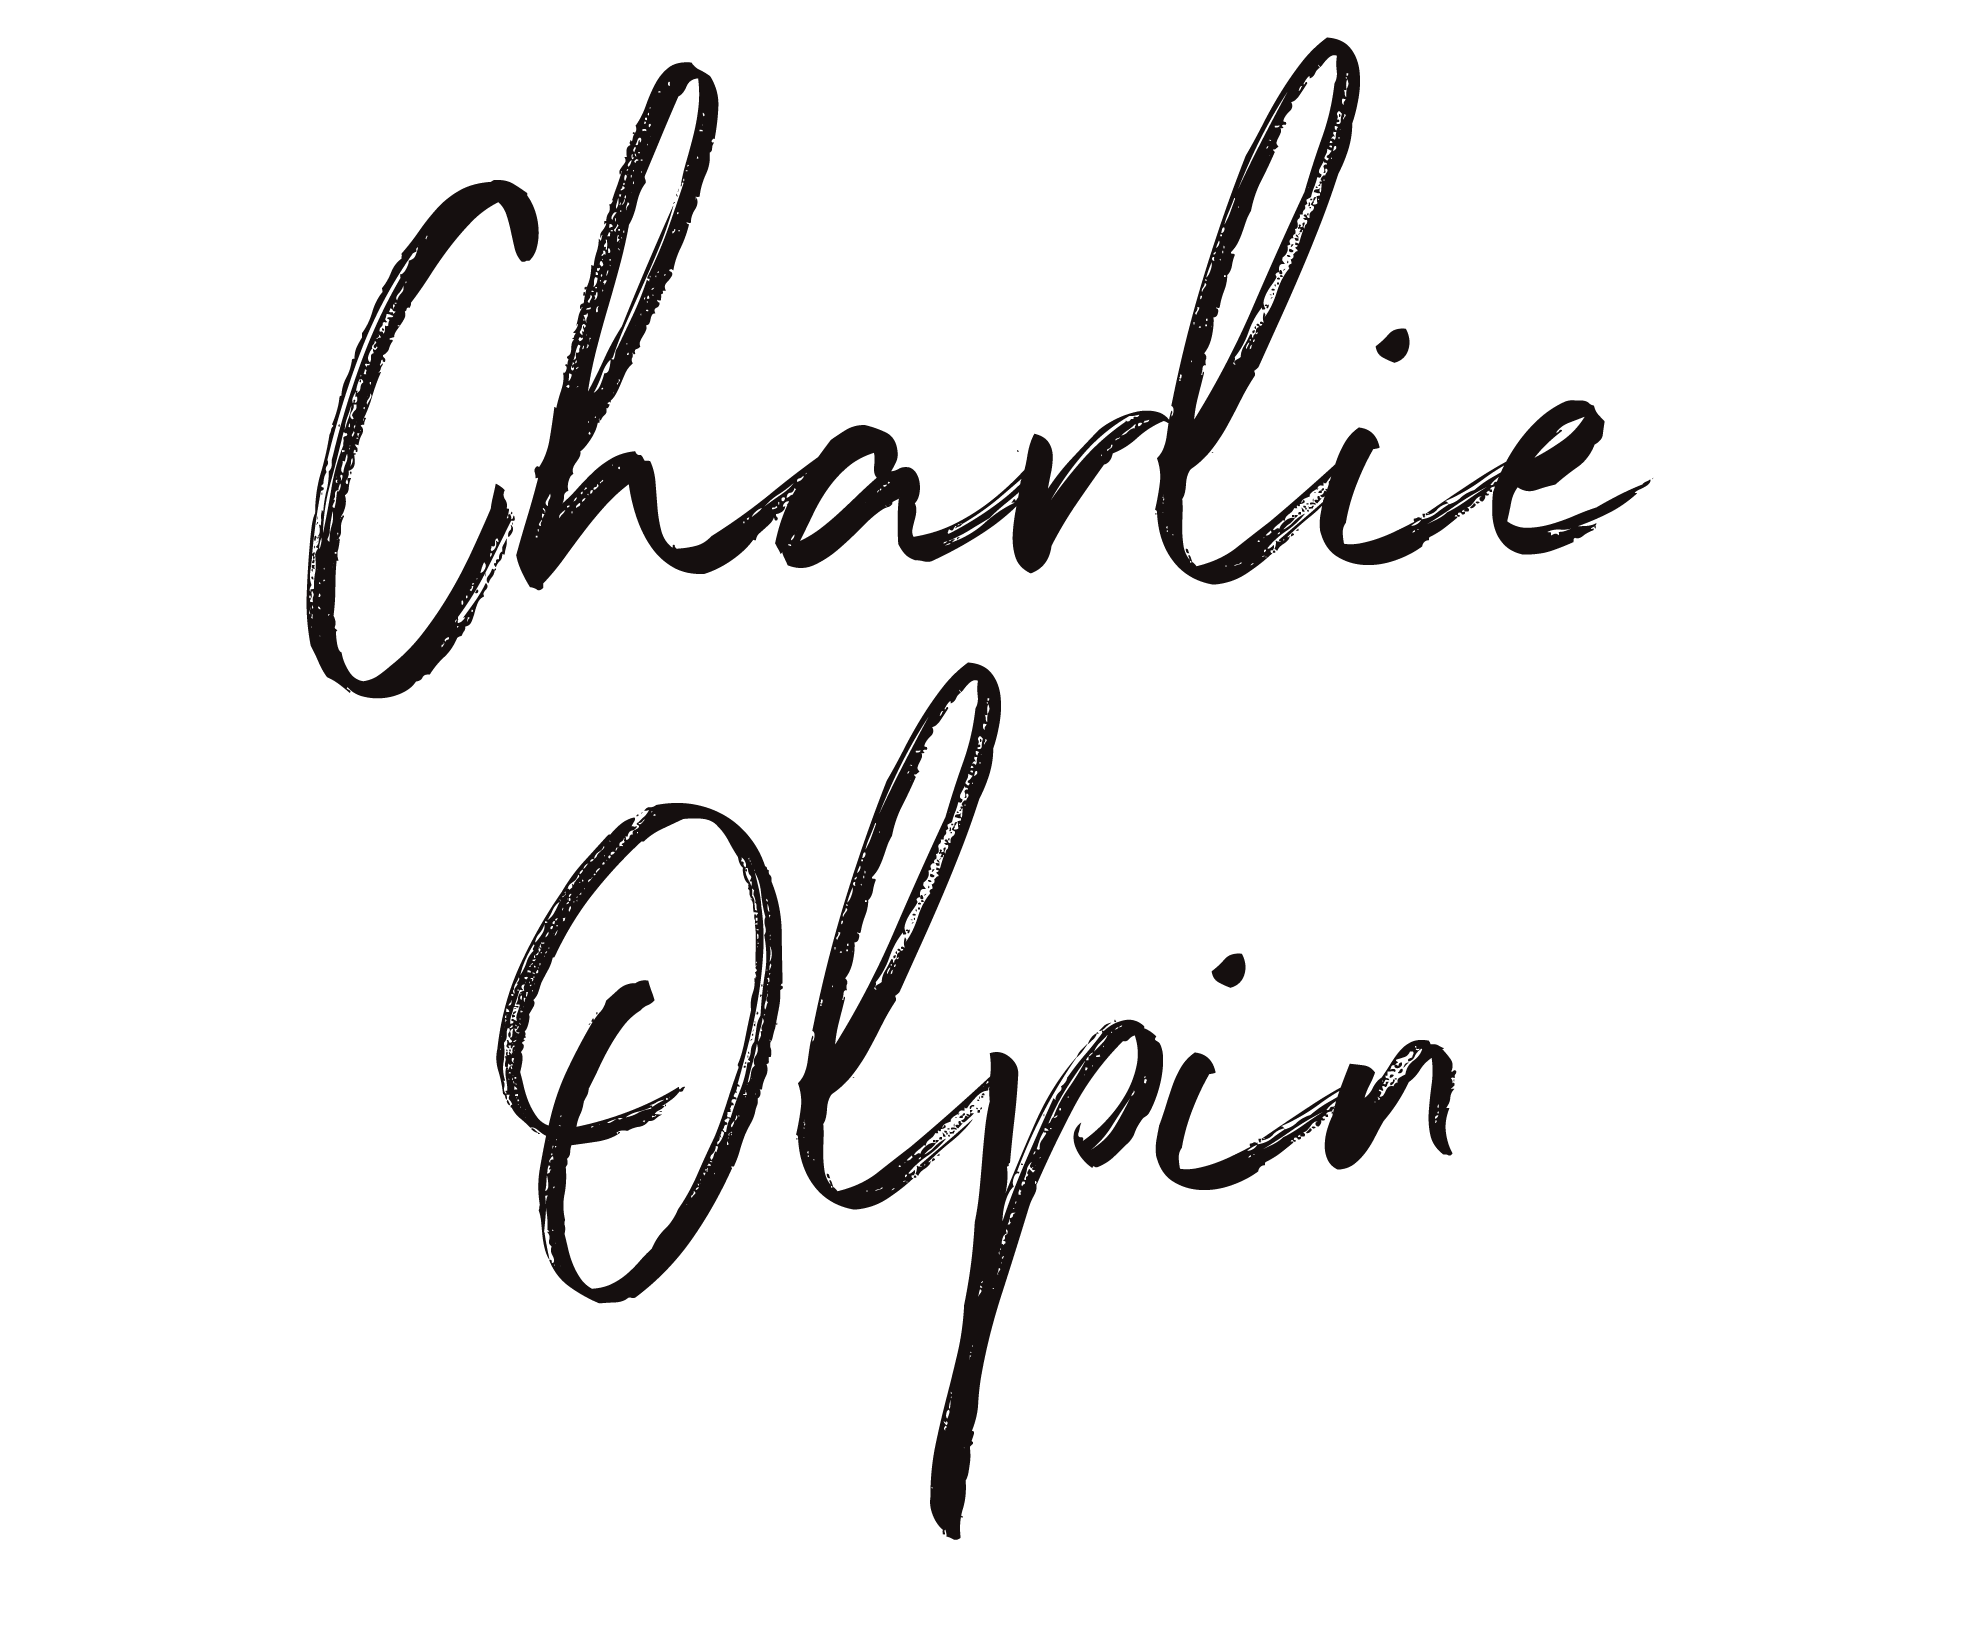 Charlie-64.png